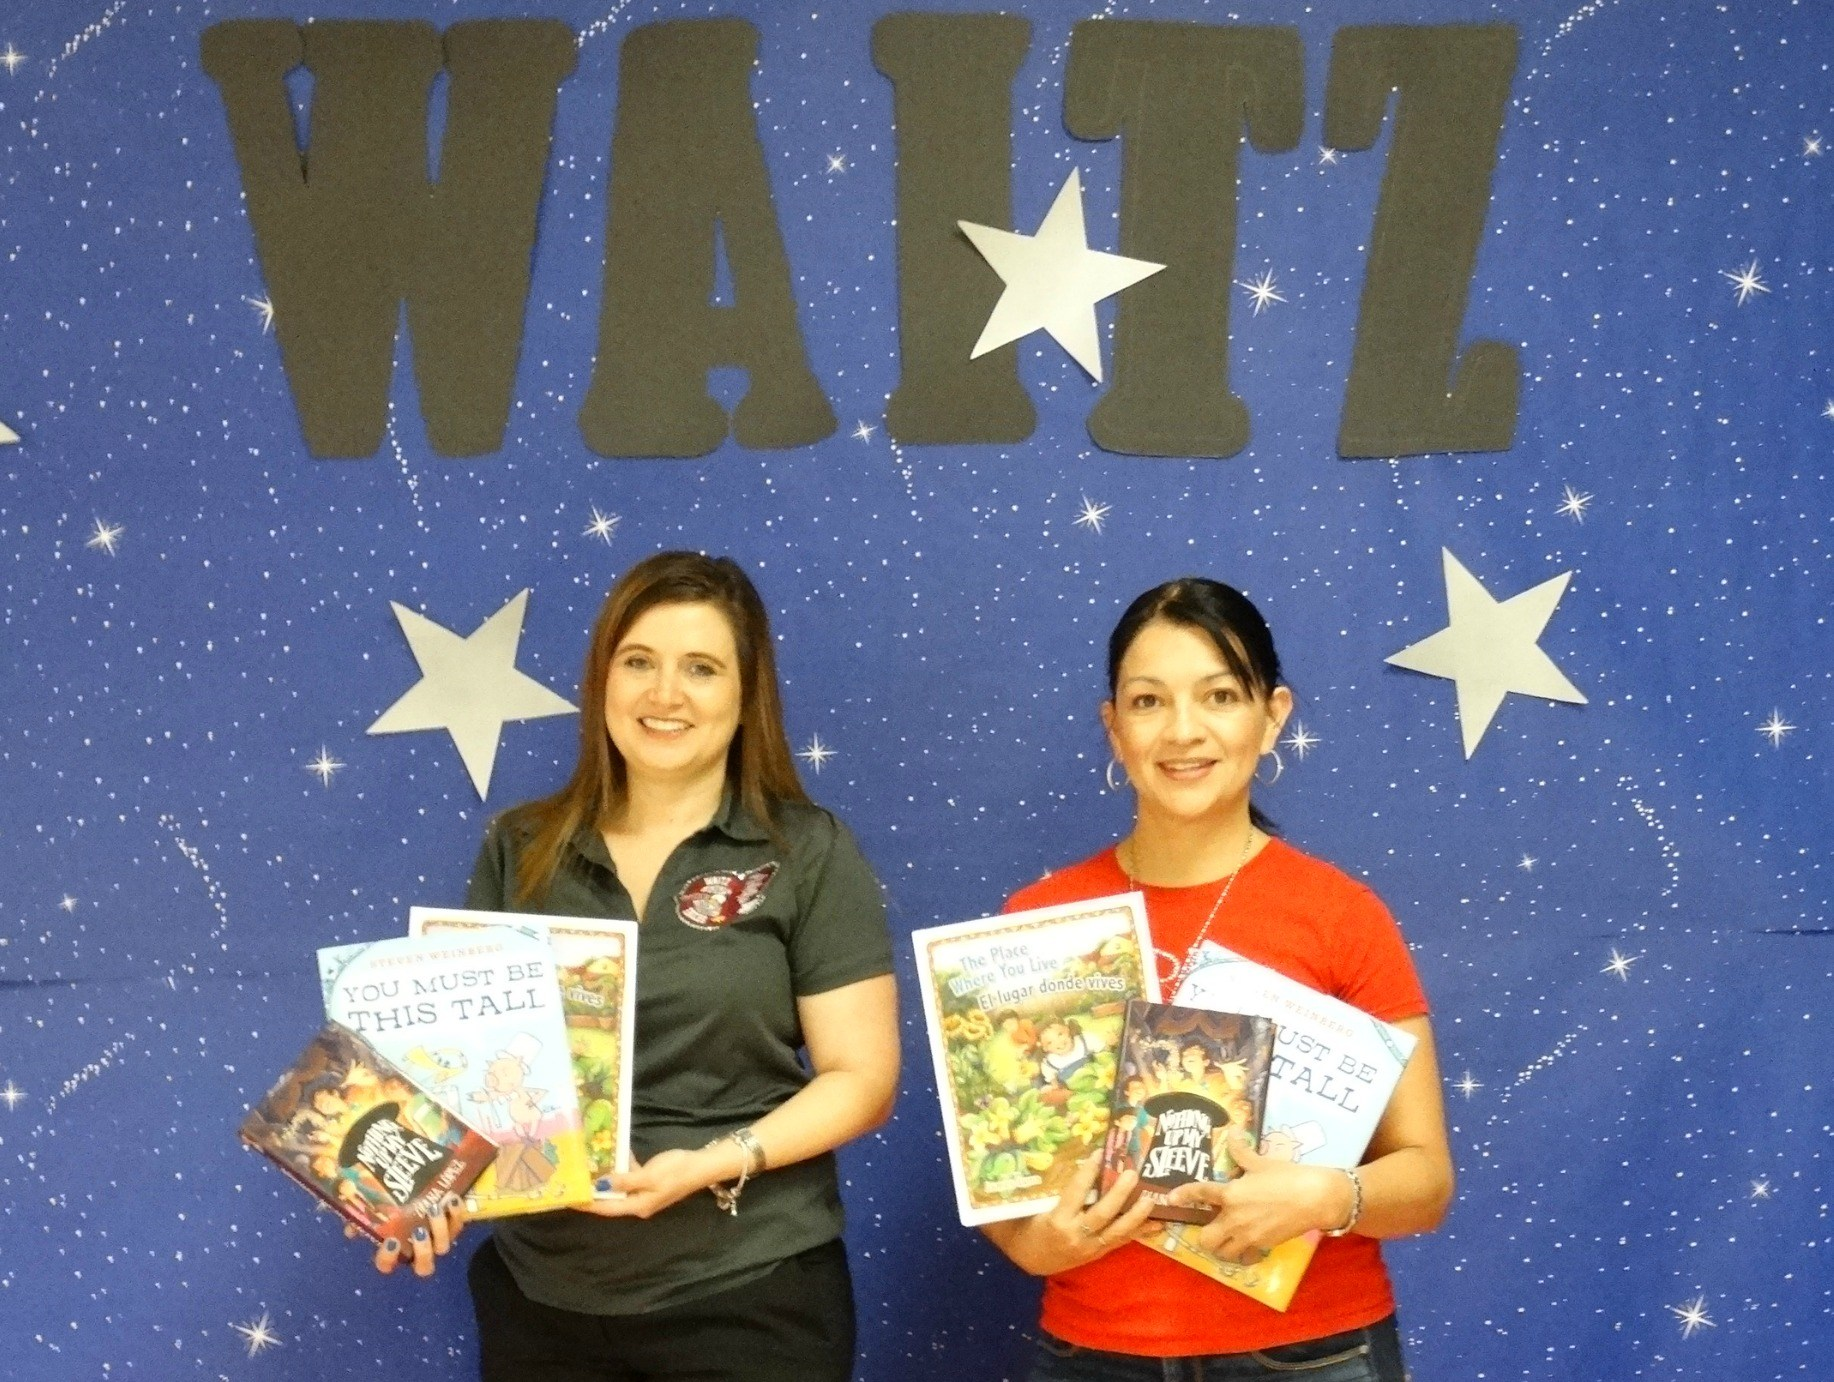 Librarian and library clerk showing the Reading Rock Star books.